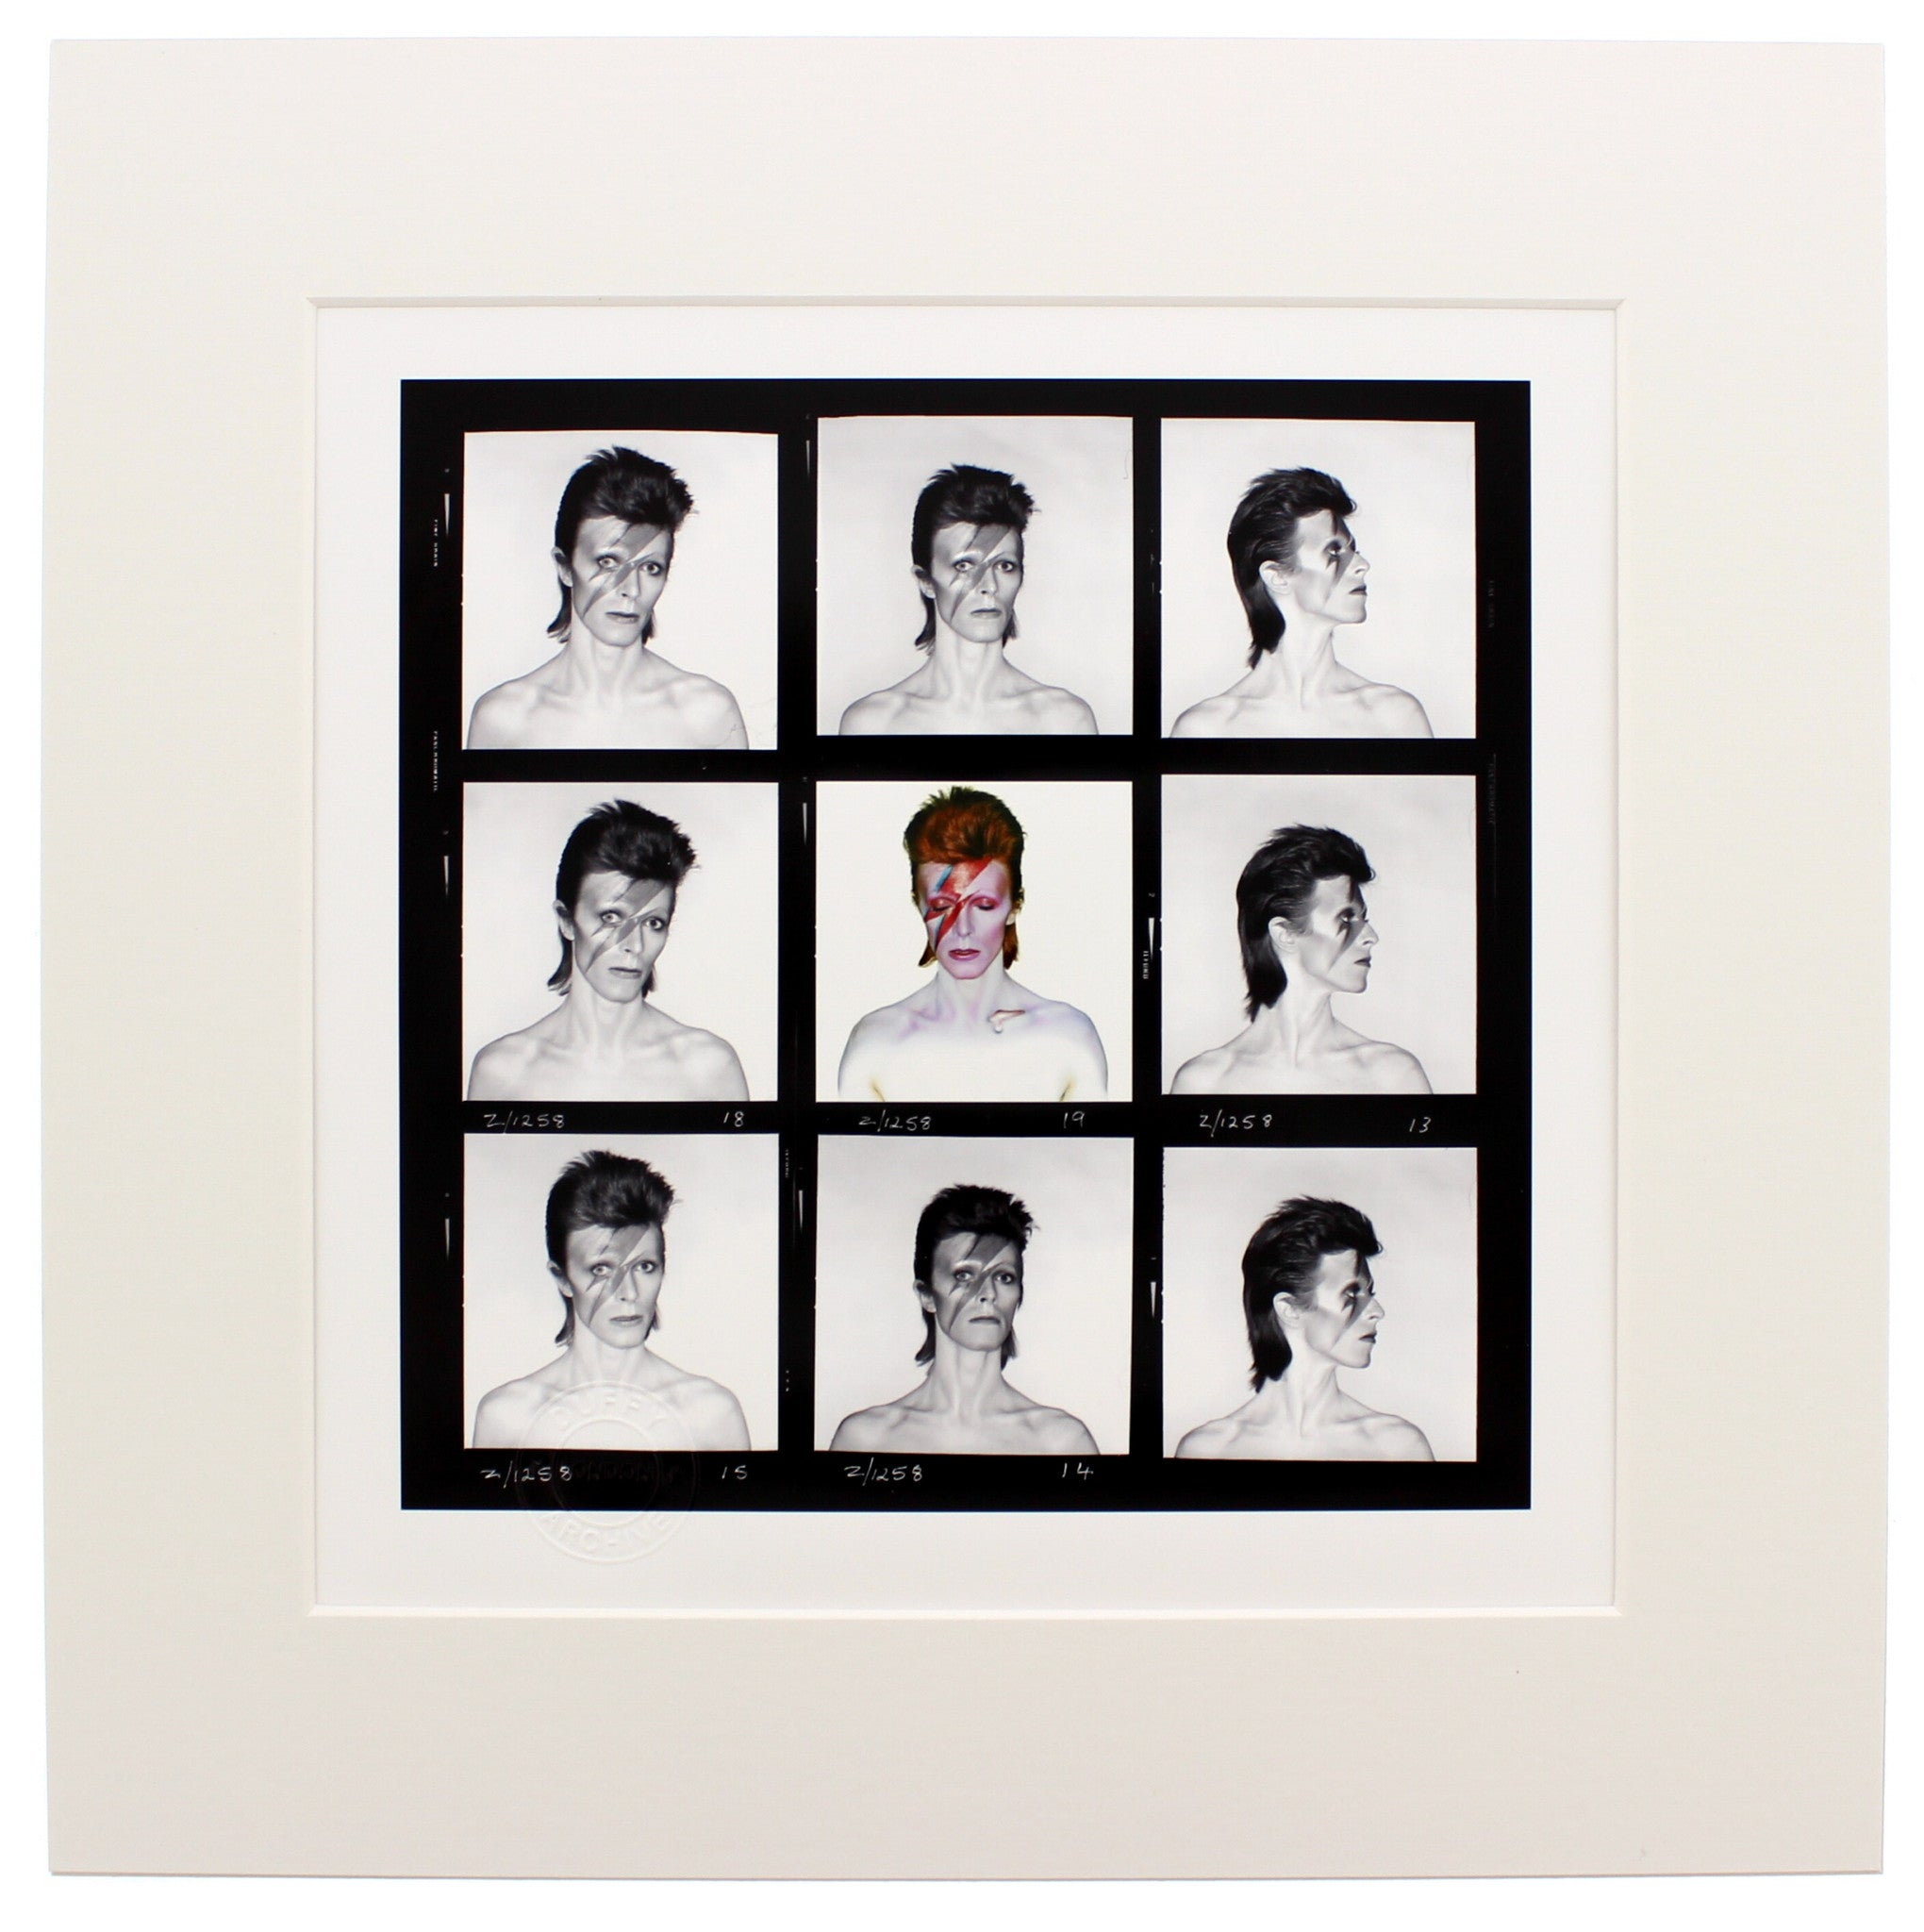 Aladdin Sane, 1973 Demi Contact Sheet Brian Duffy Archive Mounted Print